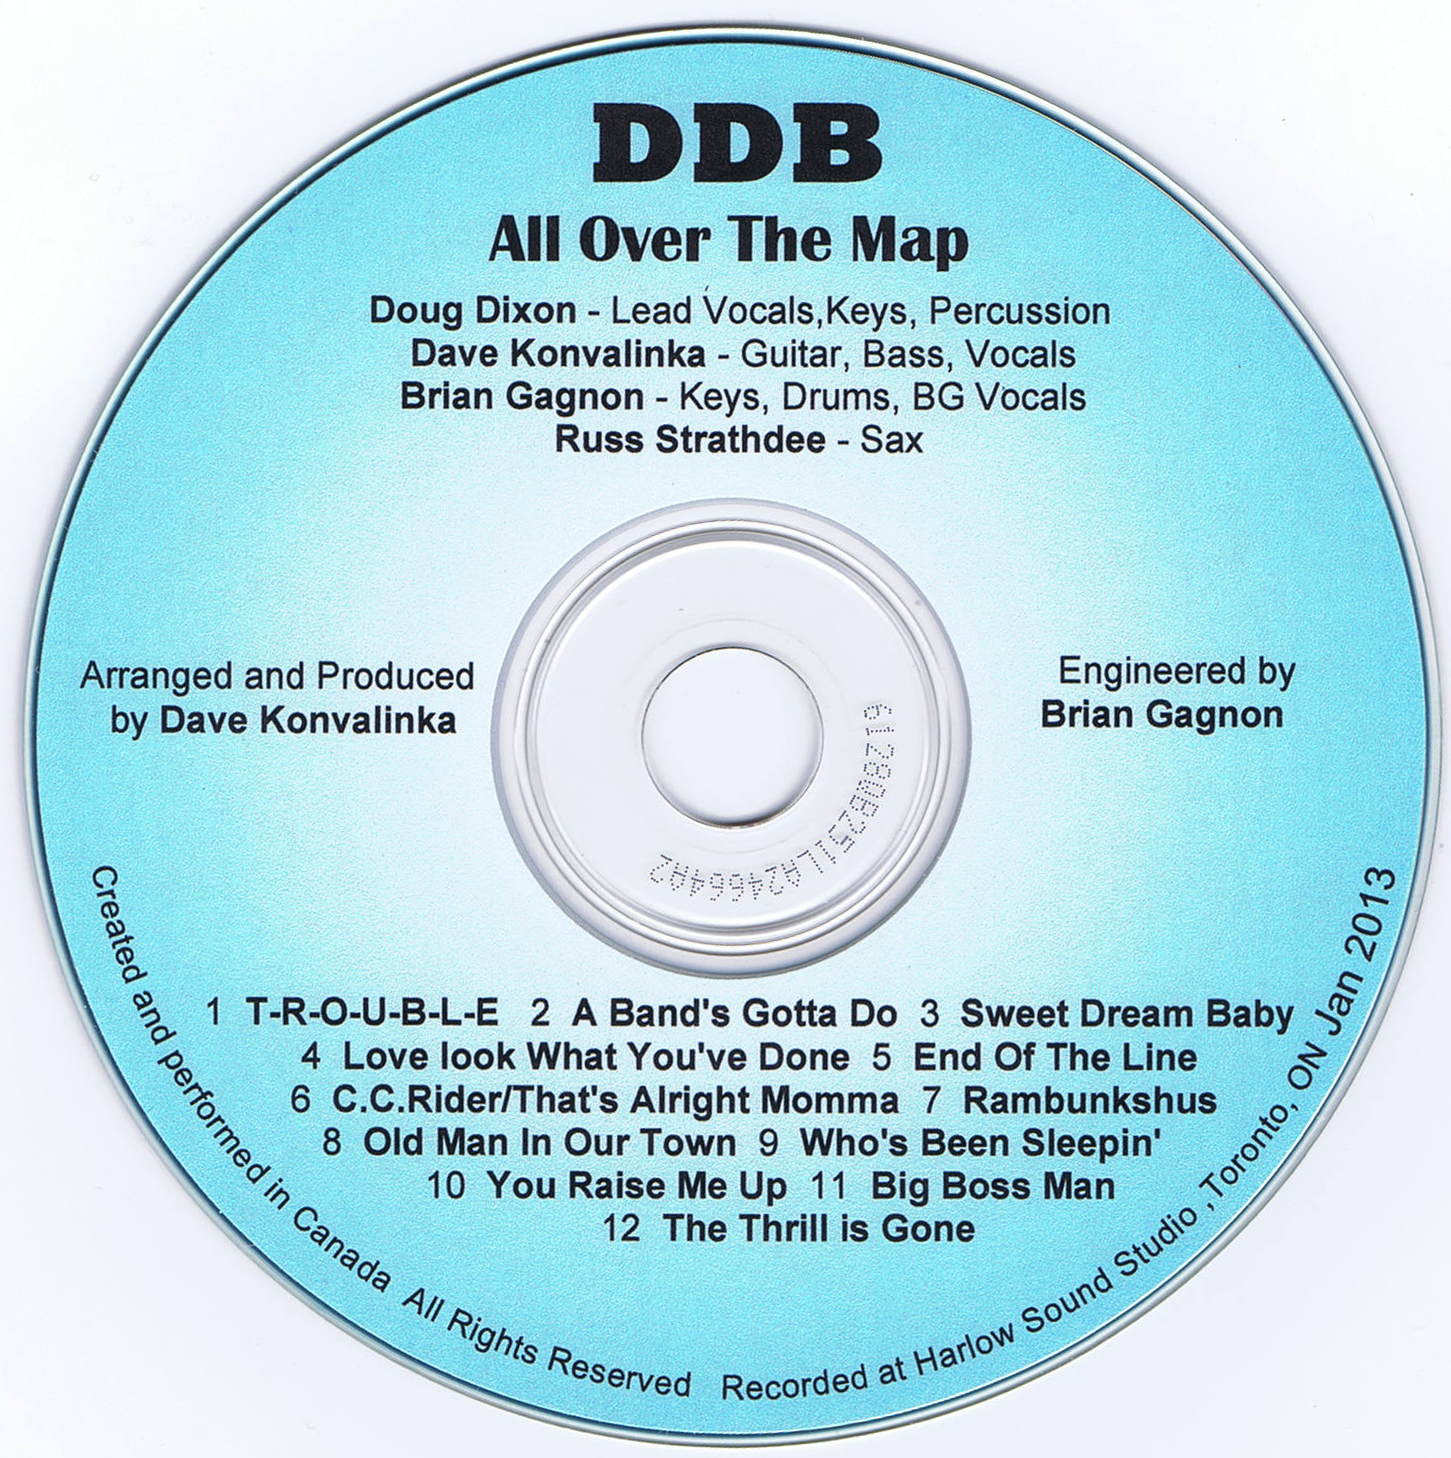 DDB - All Over The Map